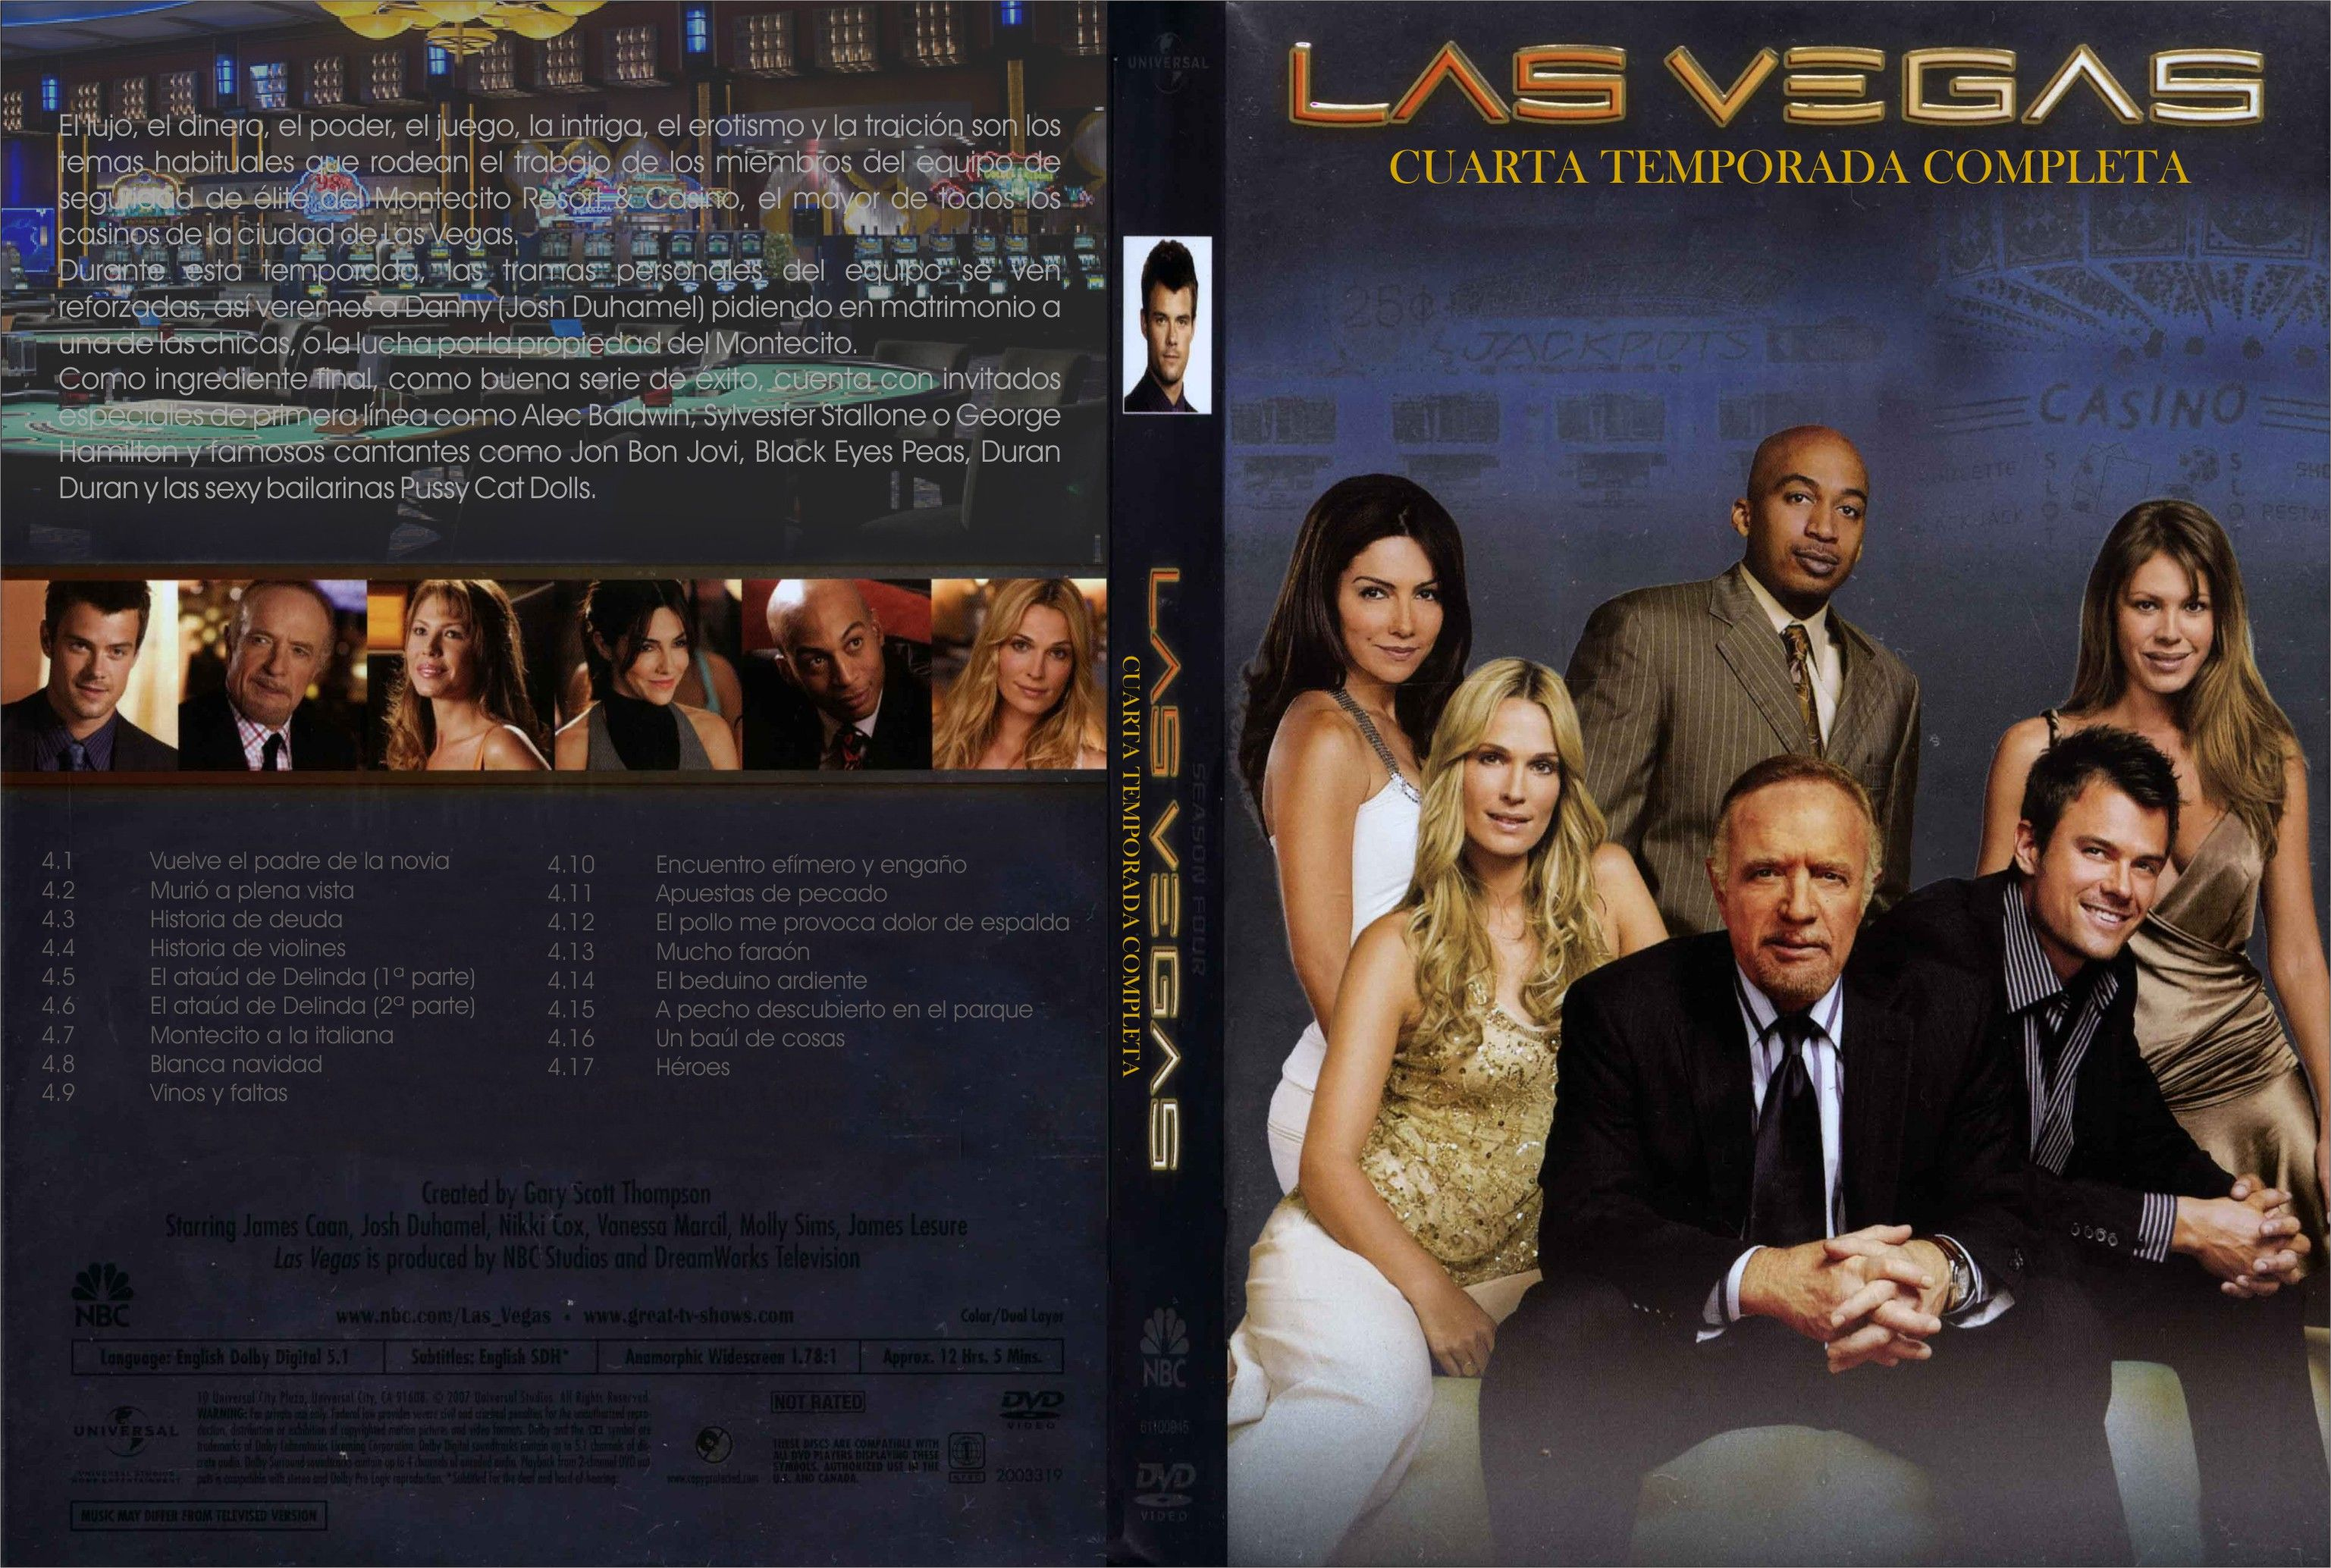 covers box sk las vegas tv series imdb dl5 high quality dvd blueray movie. Black Bedroom Furniture Sets. Home Design Ideas